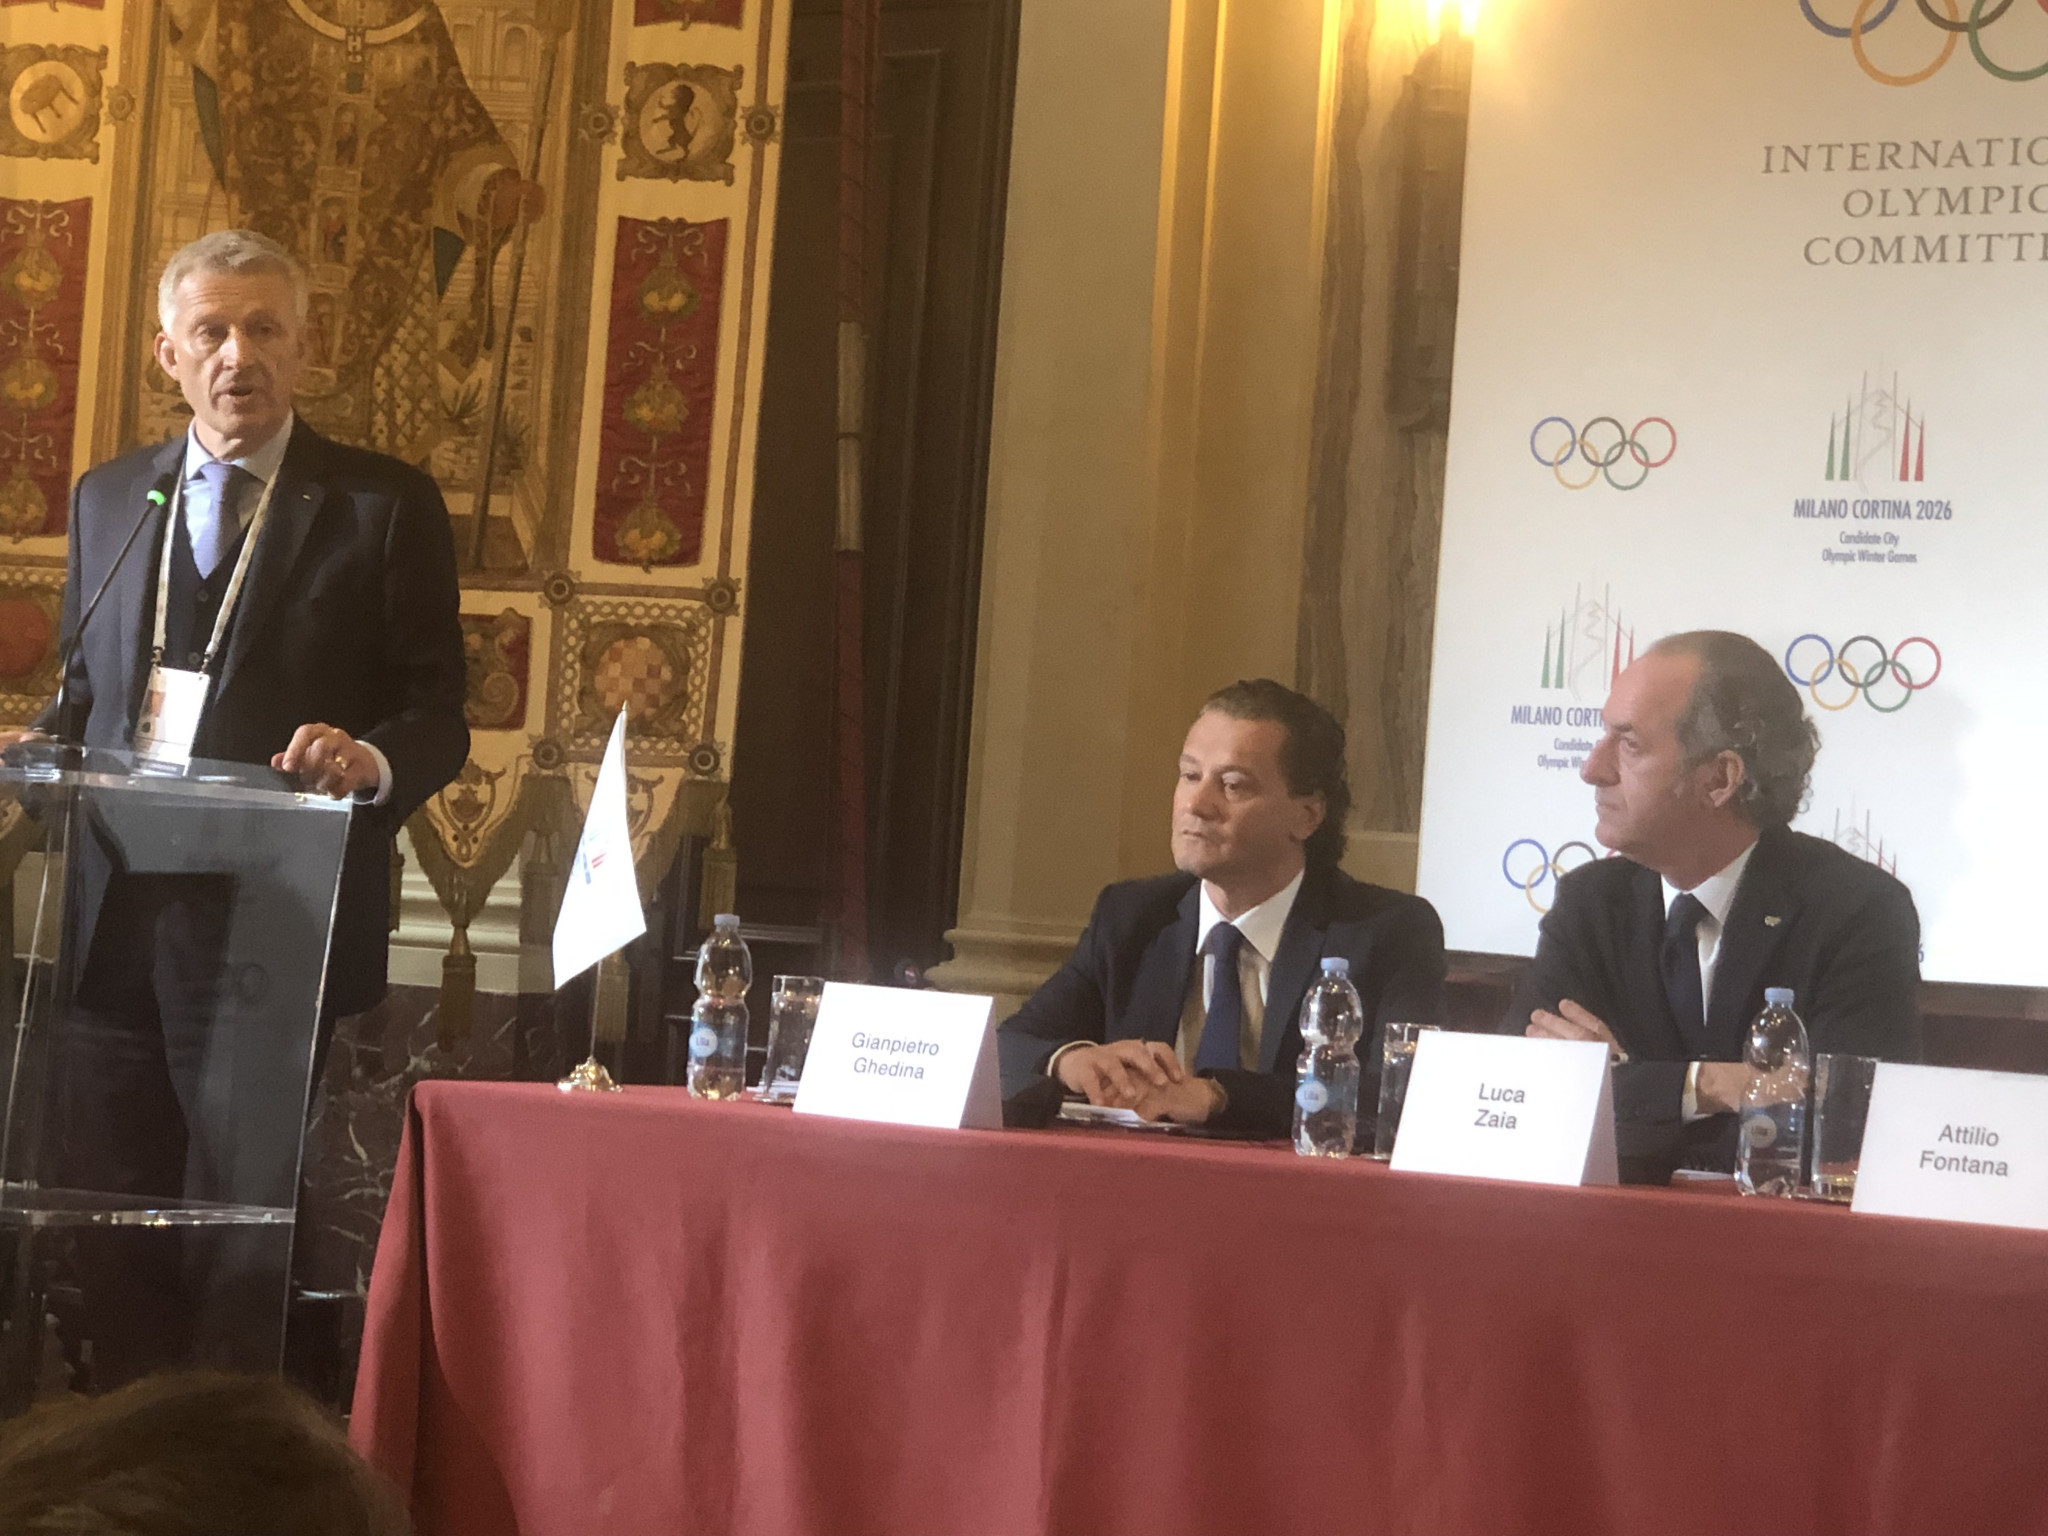 IOC Evaluation Commission chair Octavian Morariu claimed he was not surprised by the strong poll results that showed nationwide support for Milan Cortina 2026, with 83 per cent backing it ©ITG